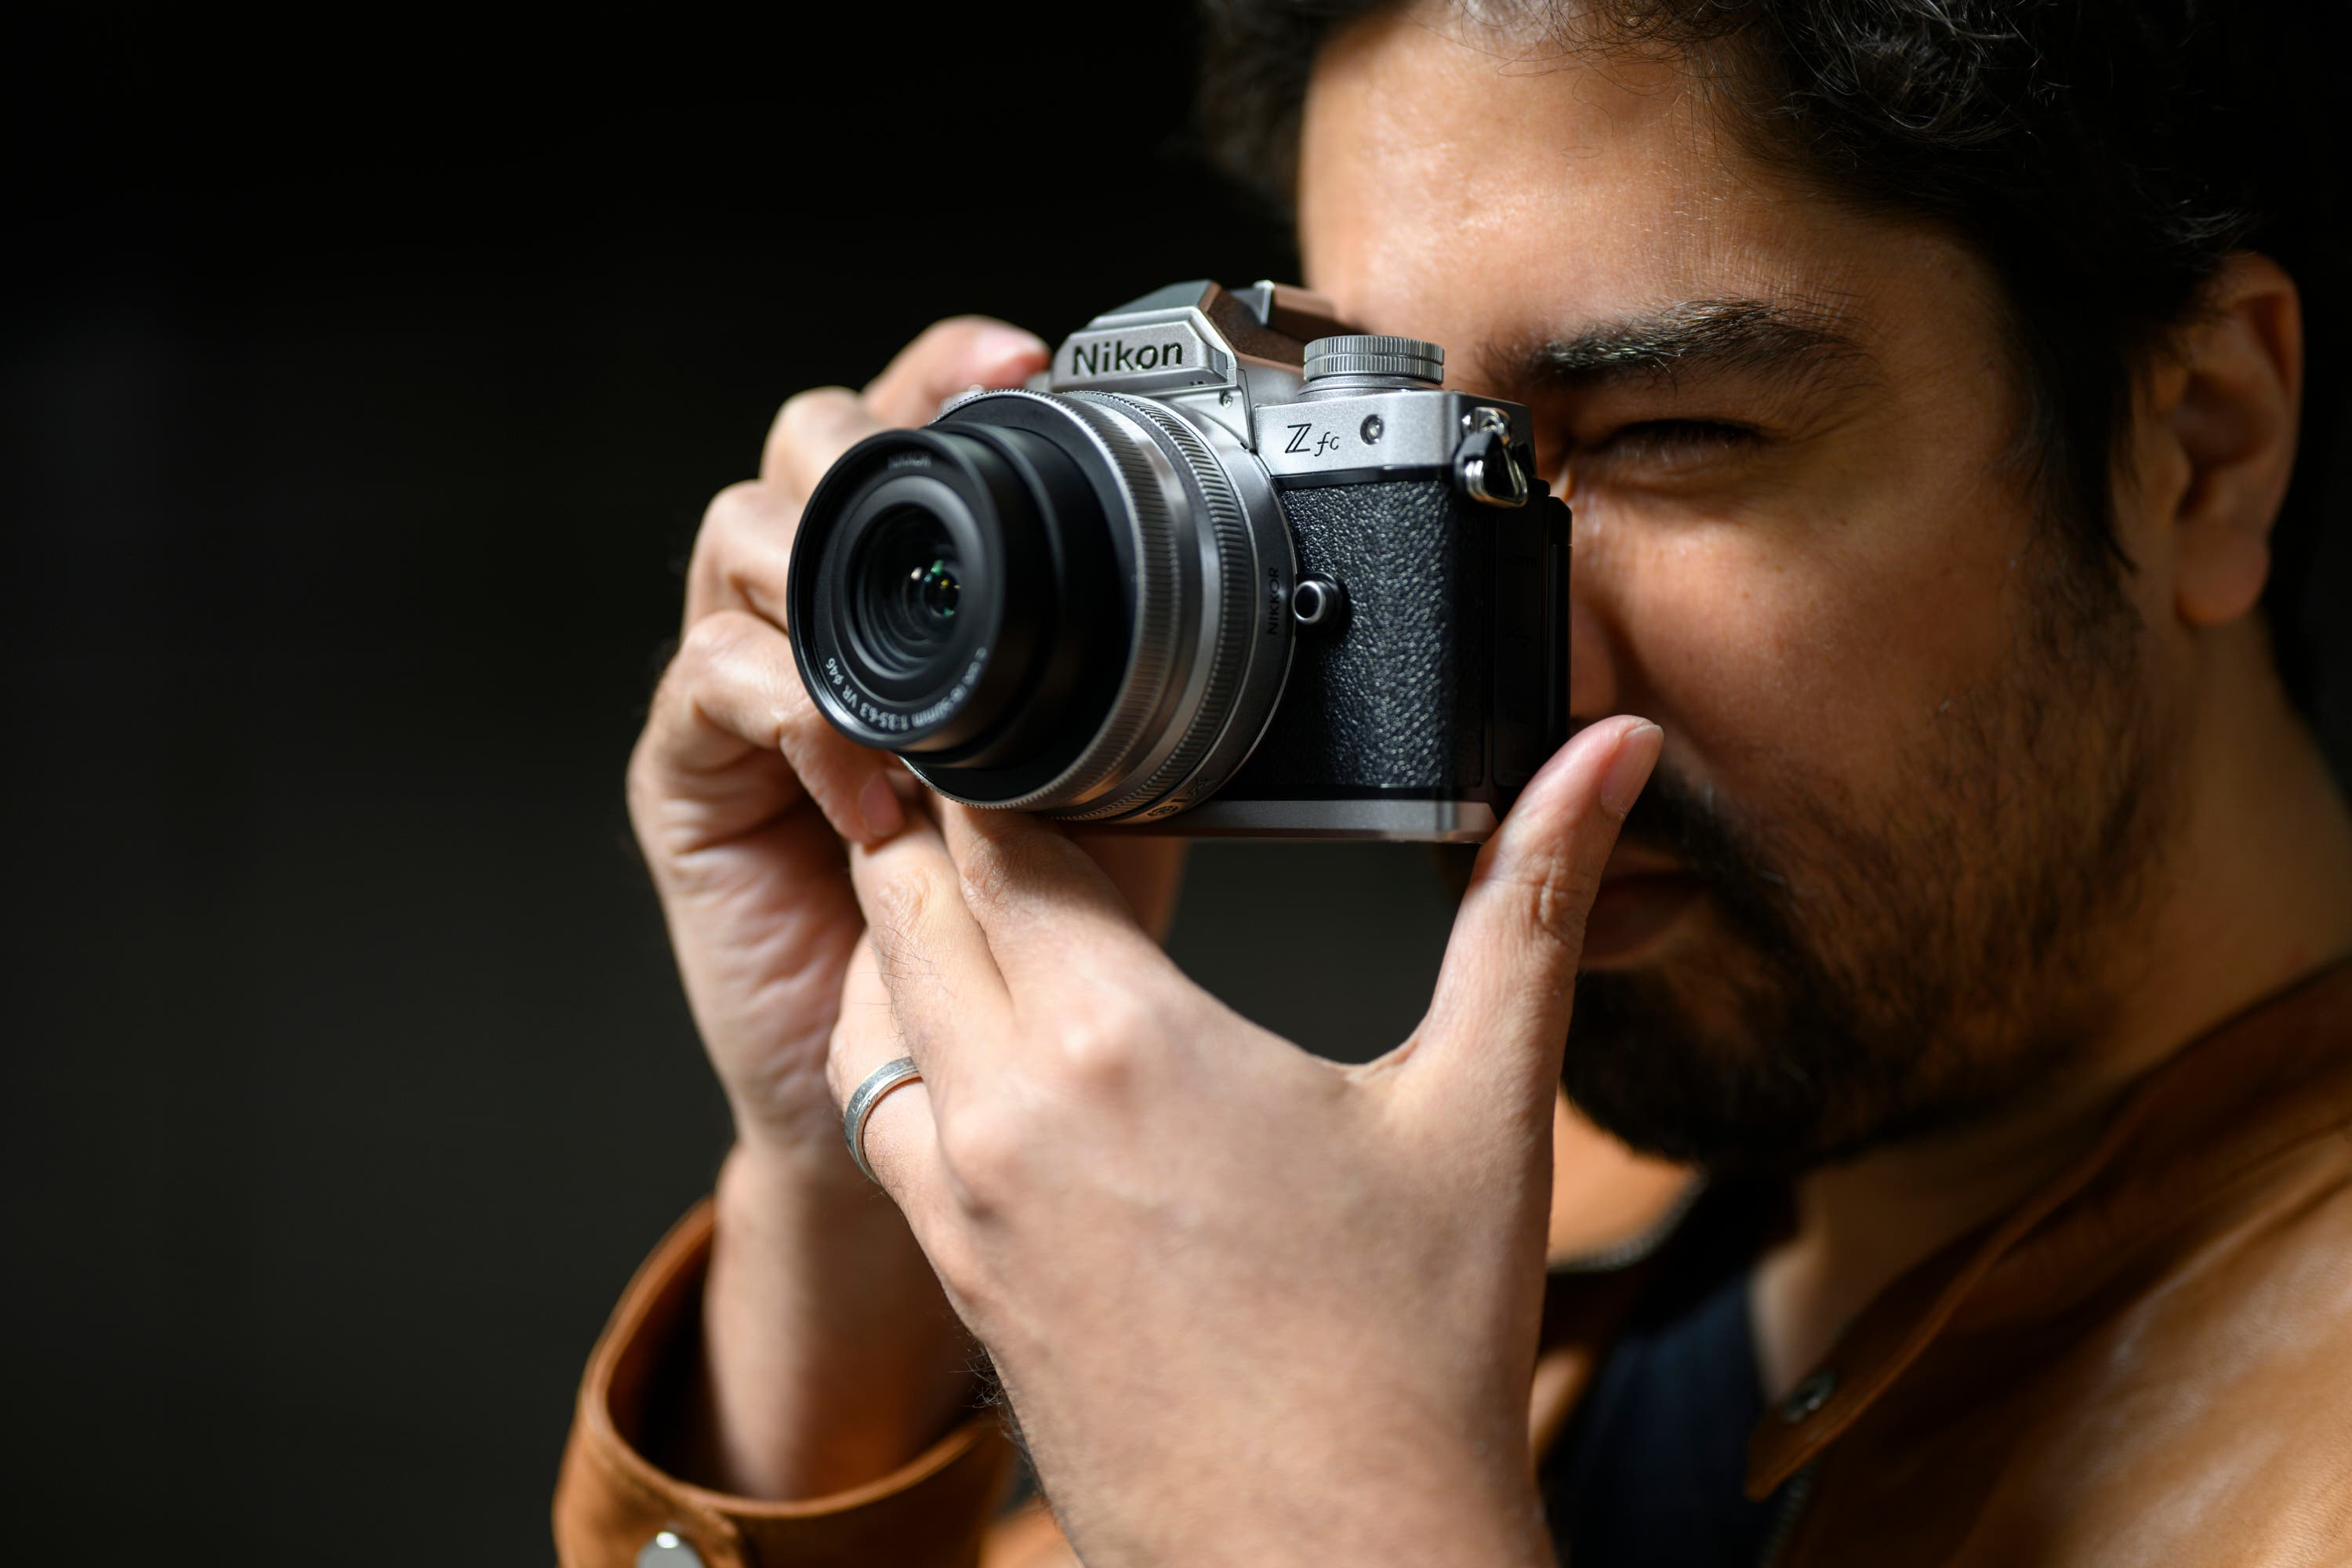 Is the new Nikon Zfc the Perfect Step Forward for the Company Now?